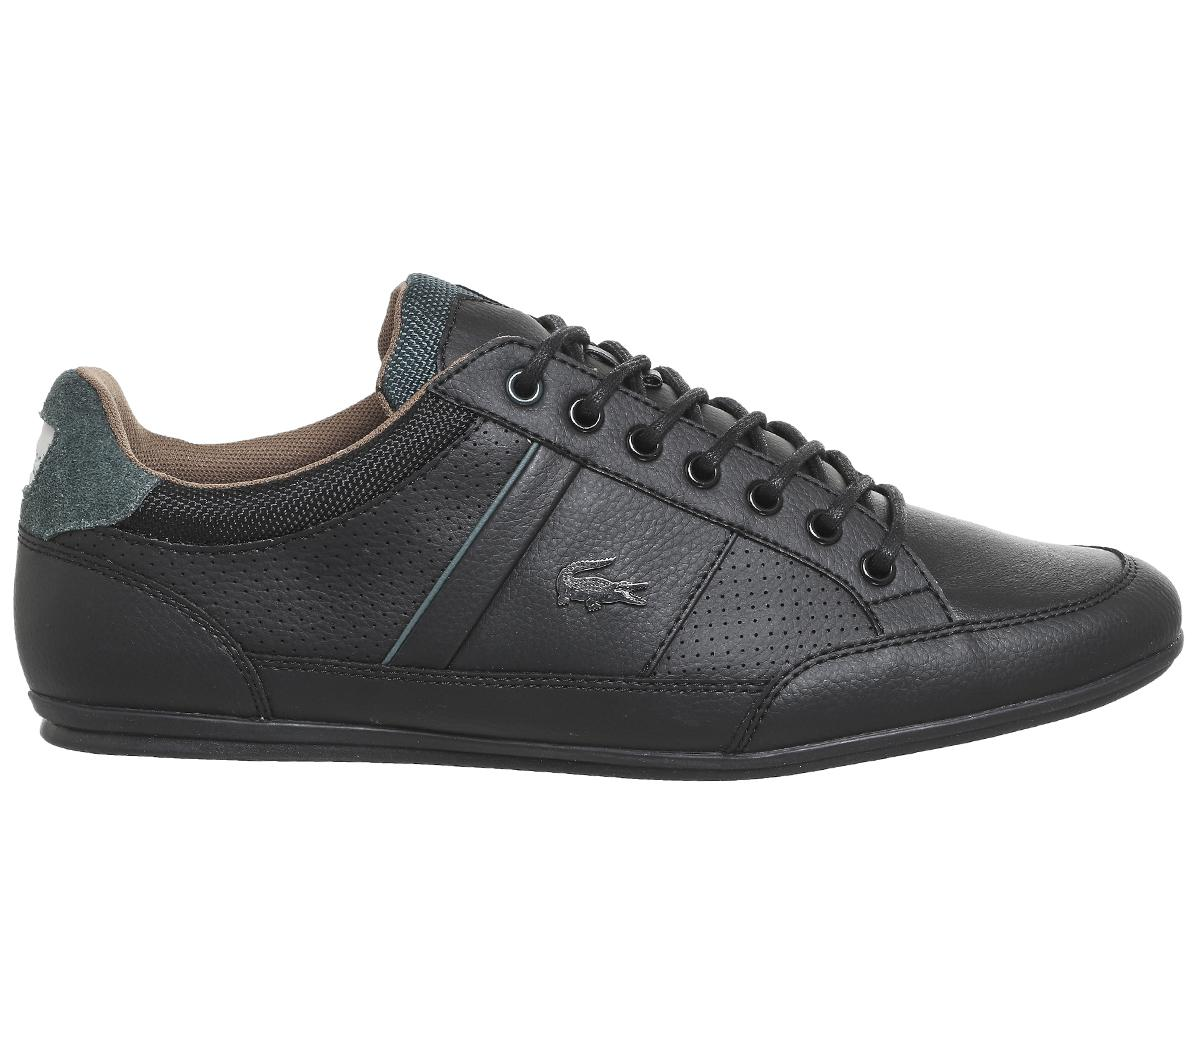 Chaymon Trainers In Black - Black Lacoste